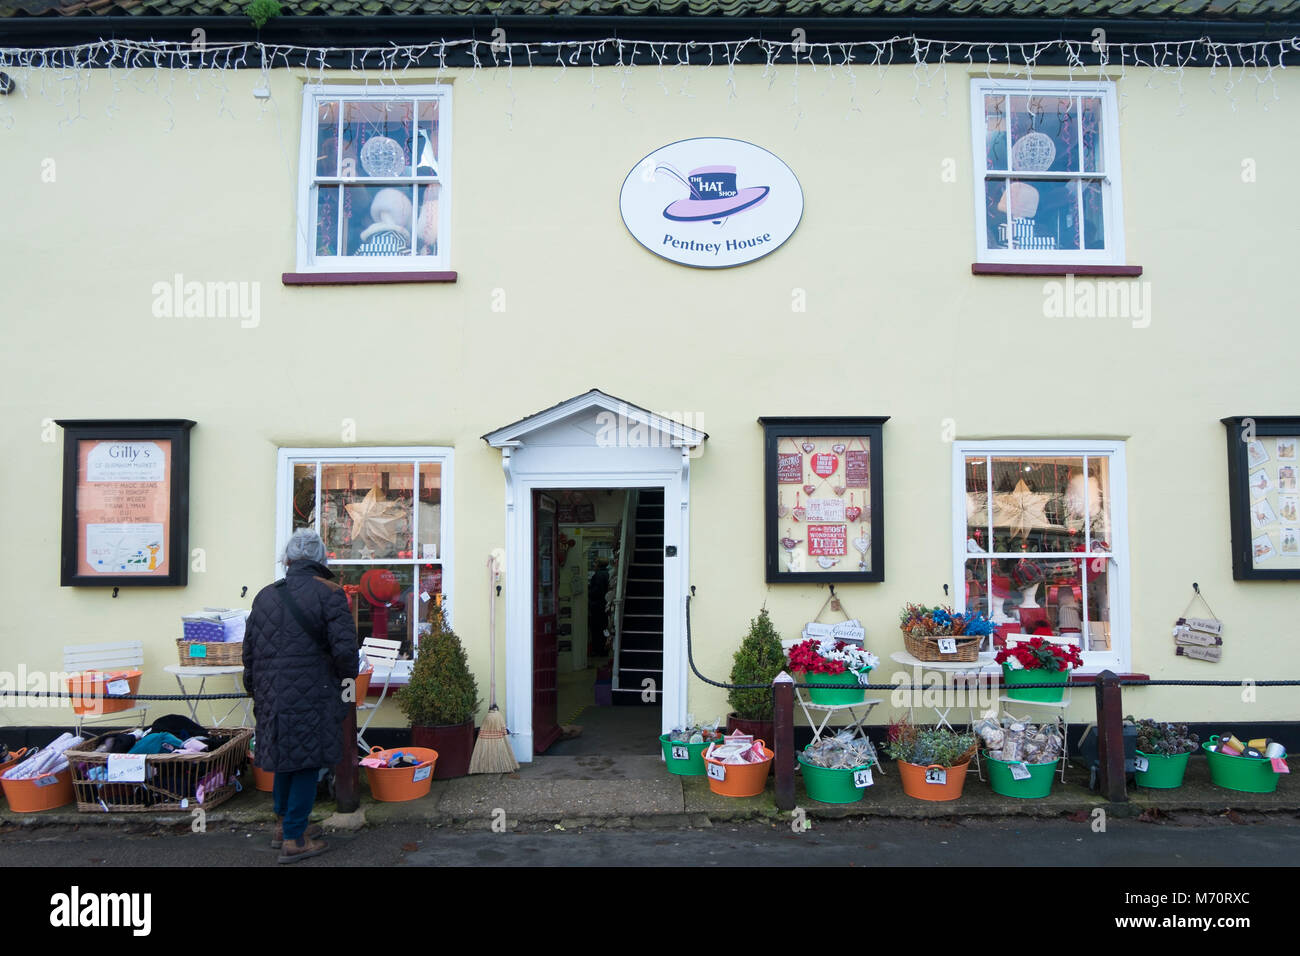 d443ea24c72656 Pentney House - The Hat Shop in Burnham Market, North Norfolk, UK ...